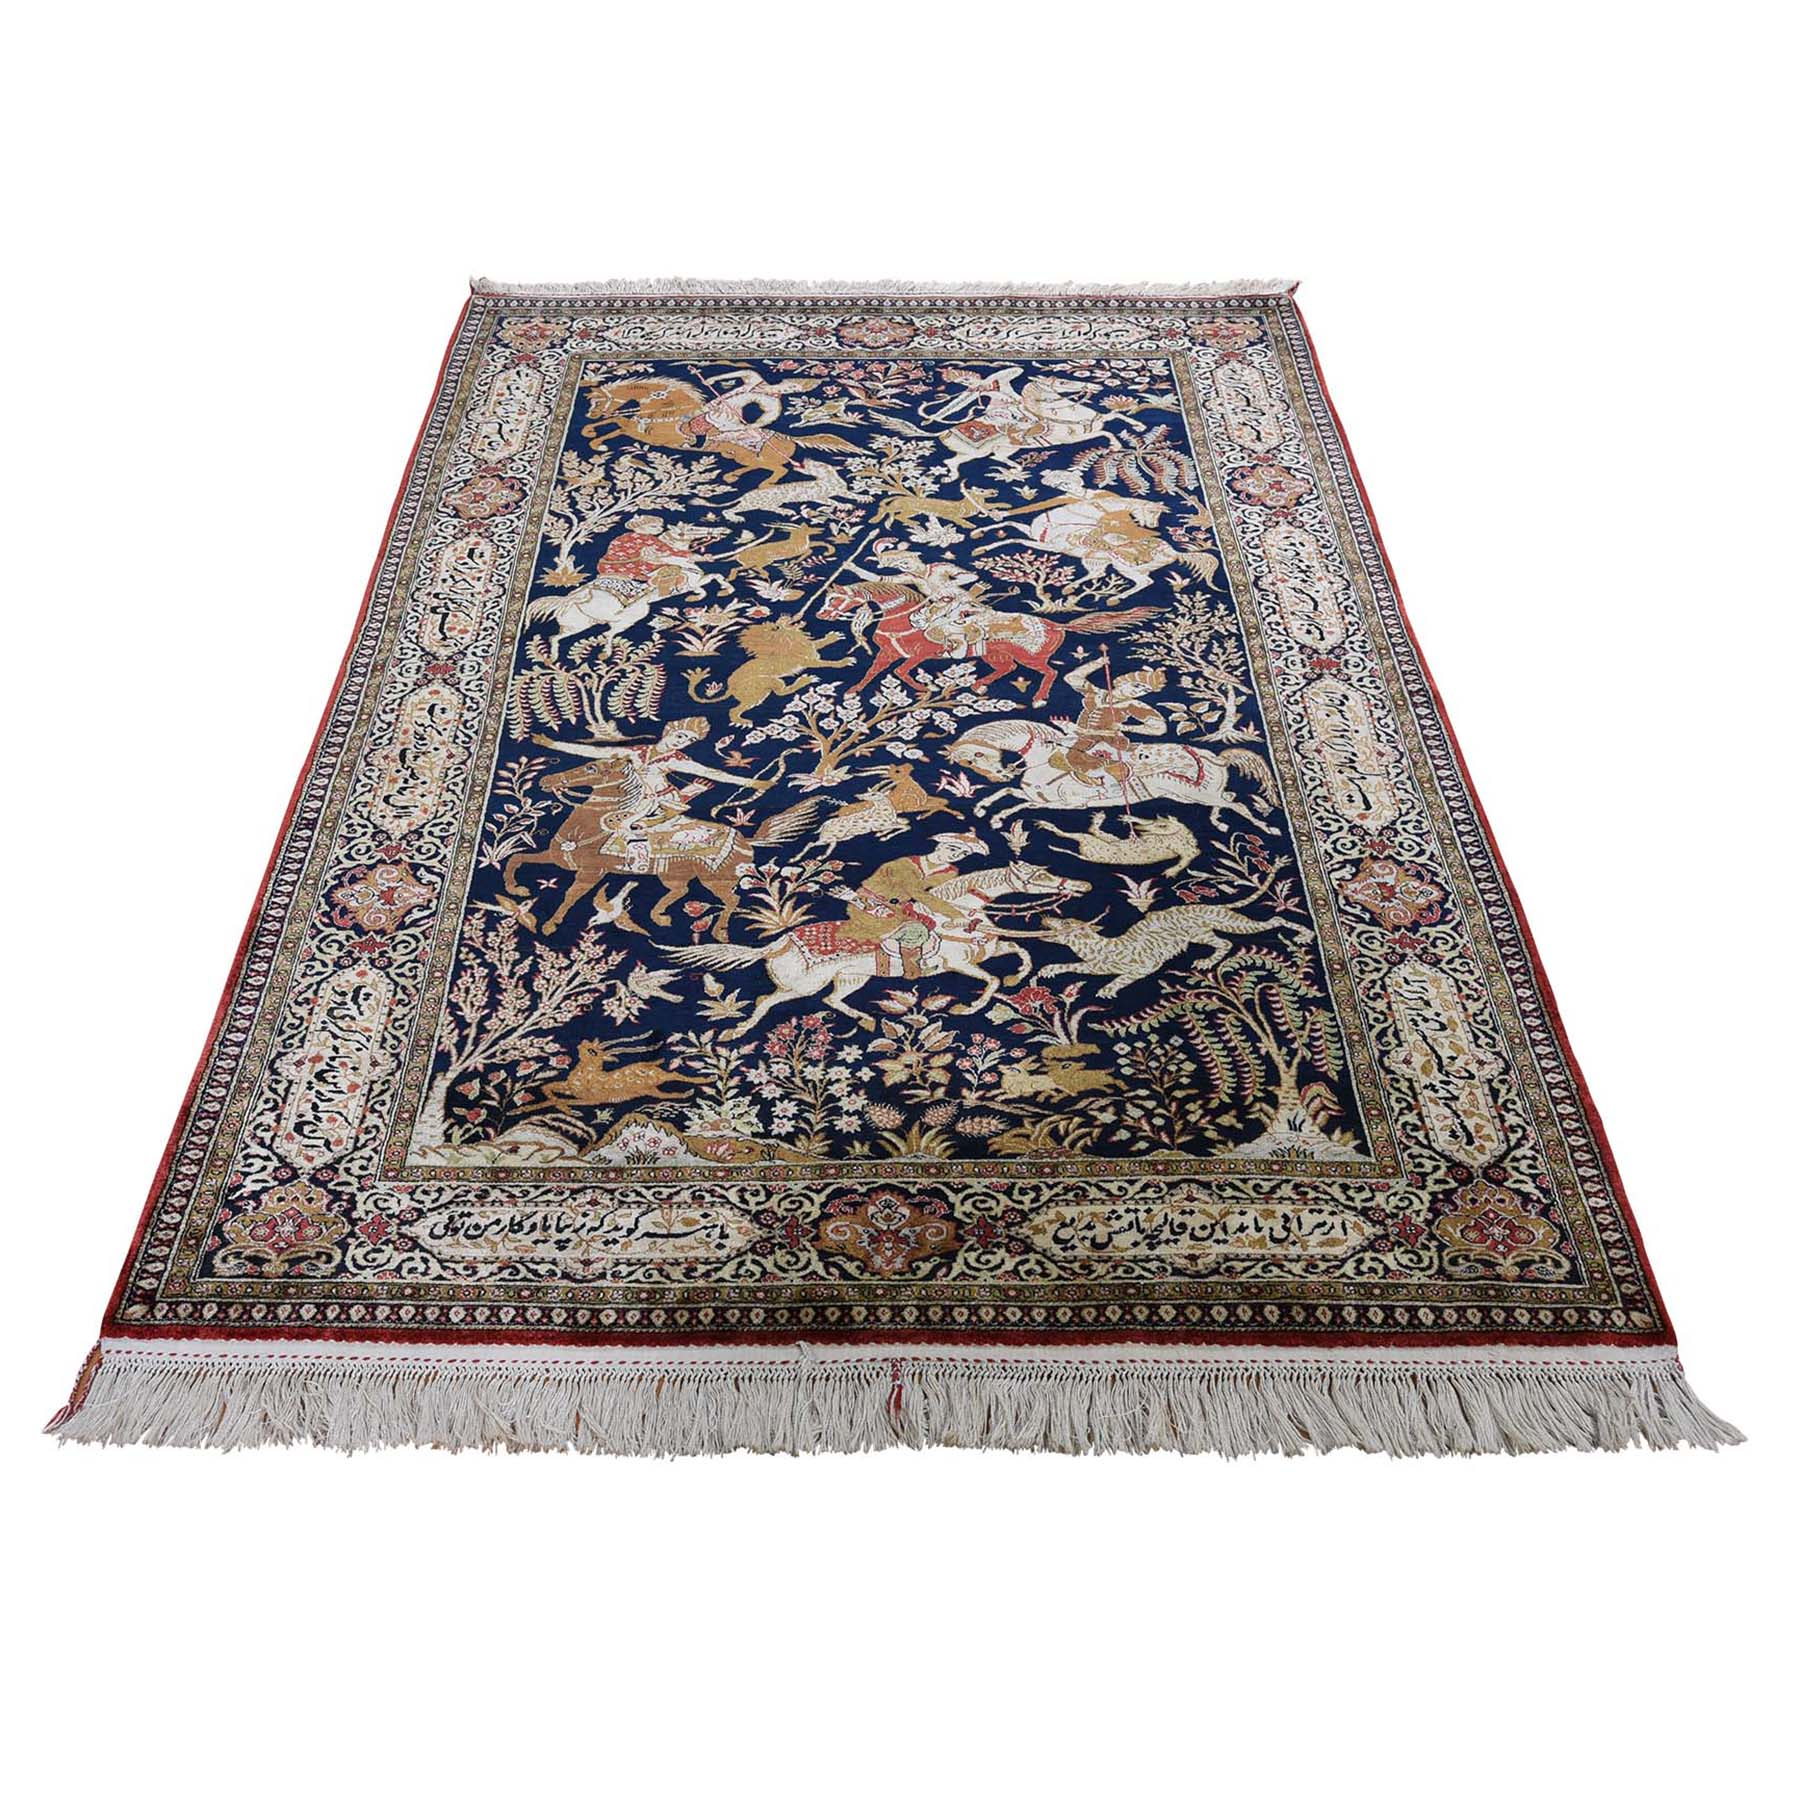 "4'4""X6'8"" Navy Blue Vintage Persian Silk Qum Hunting Design With Poetry Hand-Knotted Oriental Rug moad6a9d"